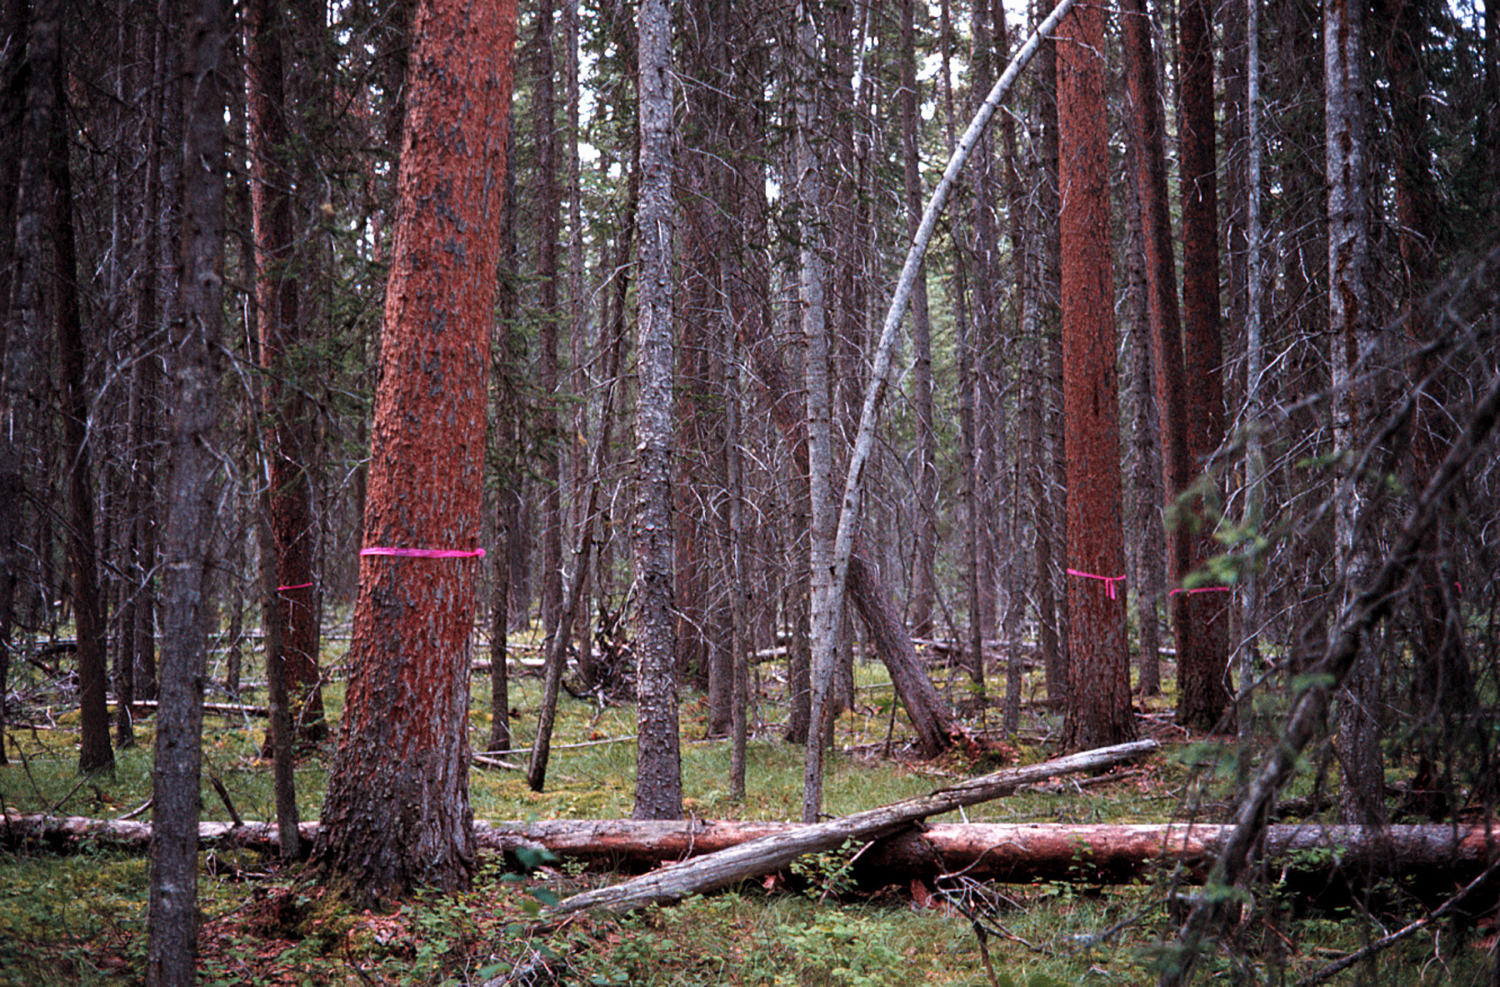 Marked pine trees in a mature forest stand